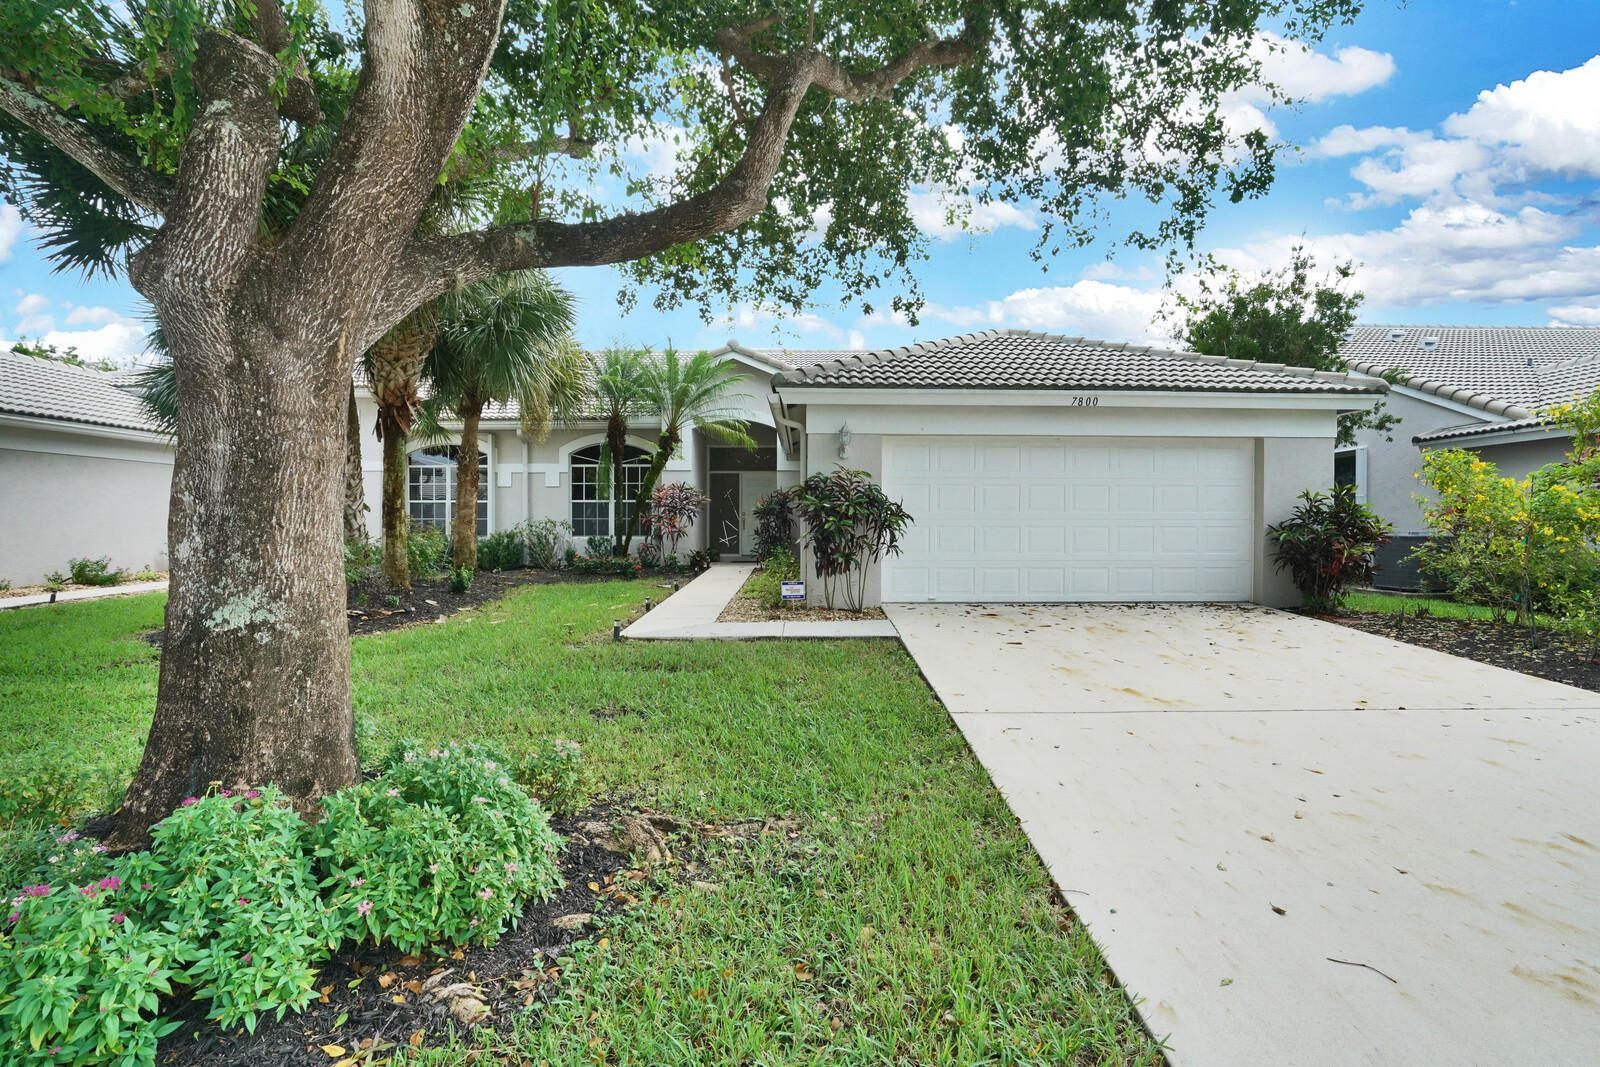 7800 Rockford Road, Boynton Beach, FL 33472 - #: RX-10671938